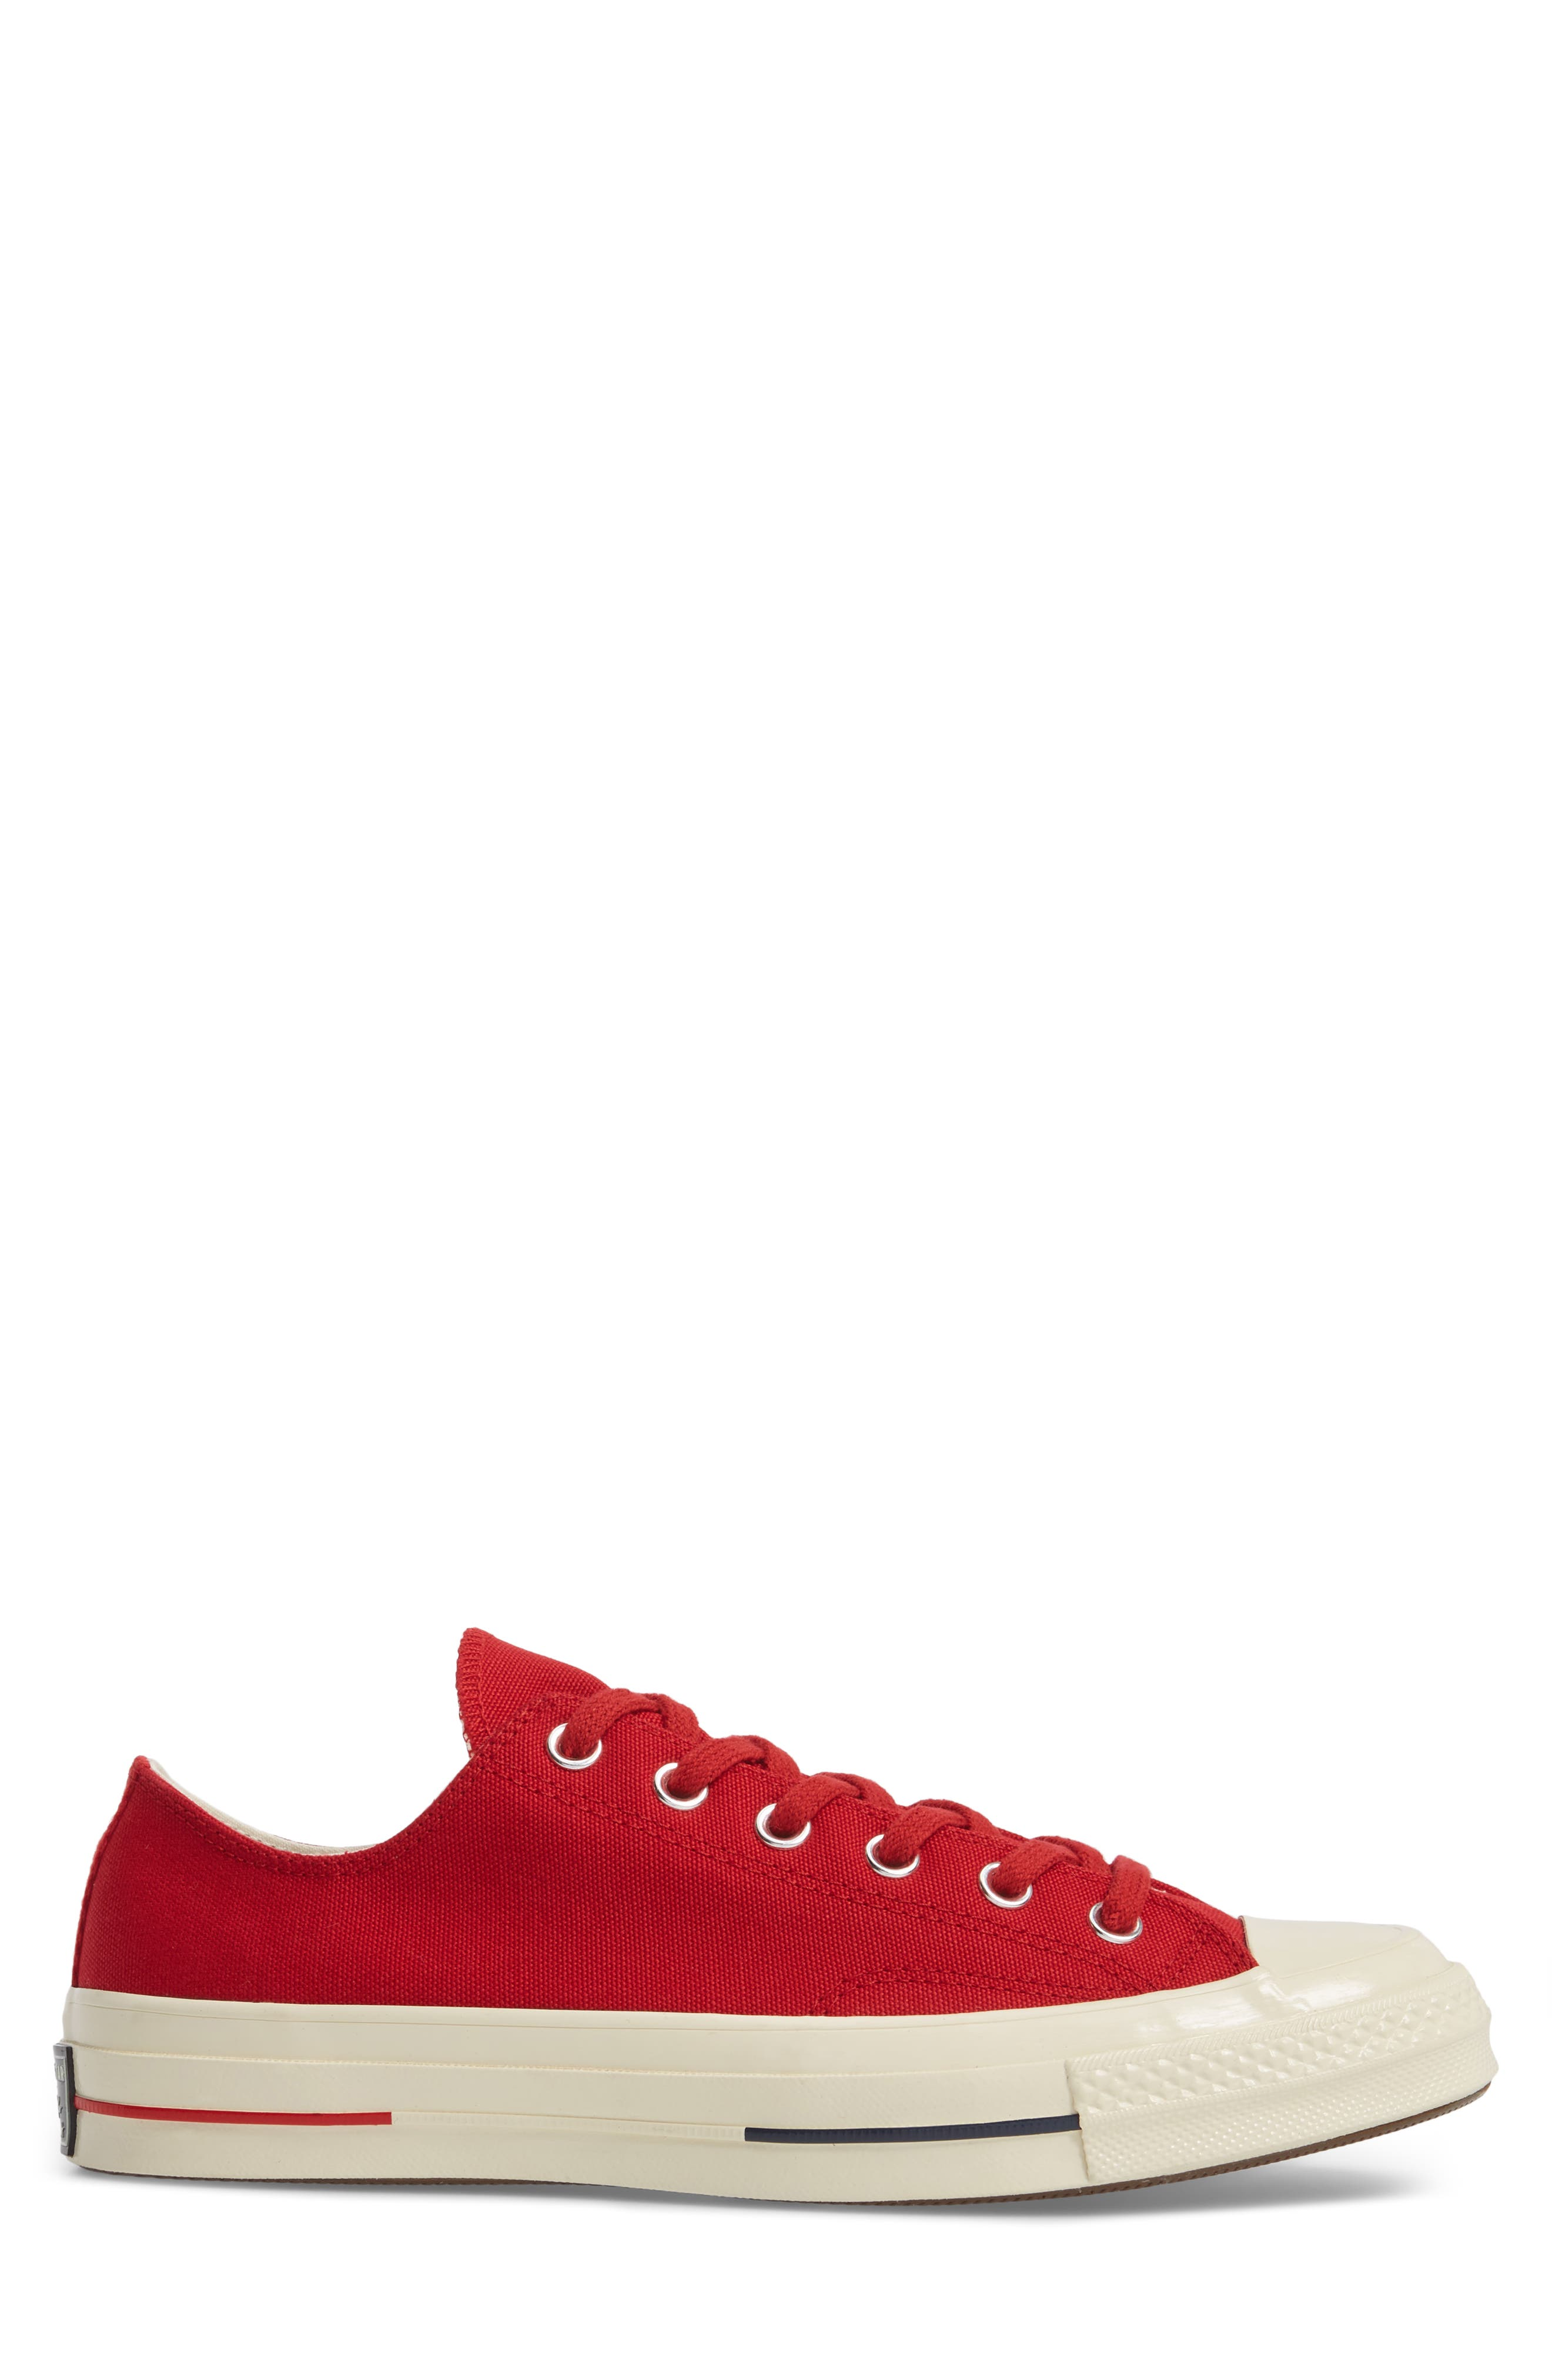 Chuck Taylor<sup>®</sup> All Star<sup>®</sup> '70s Heritage Low Top Sneaker,                             Alternate thumbnail 3, color,                             600